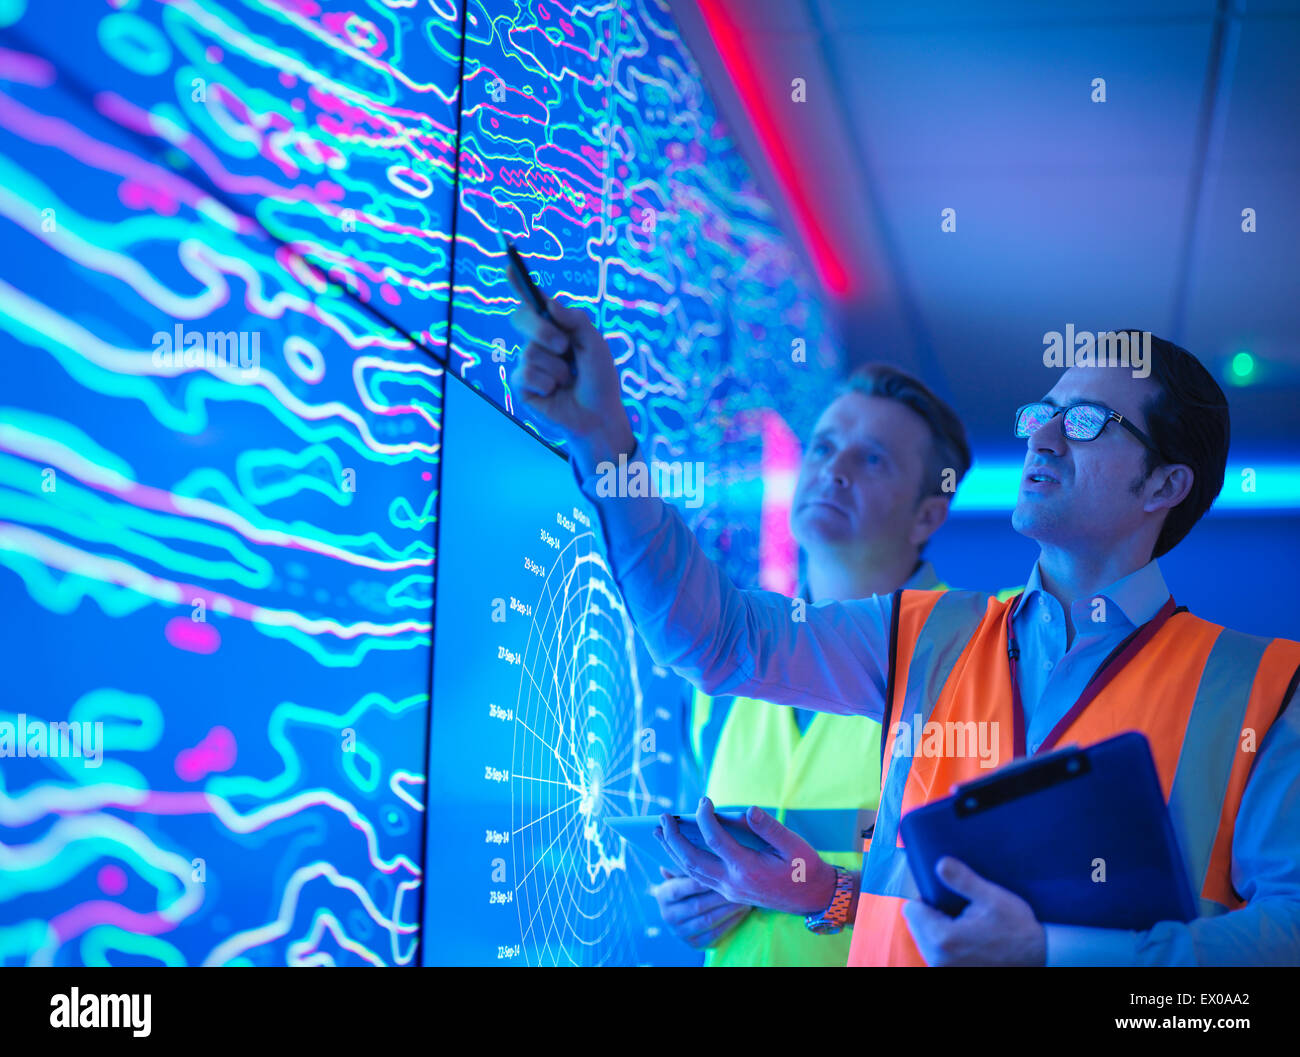 Geologists studying graphical display of oil and gas bearing rock on screens - Stock Image